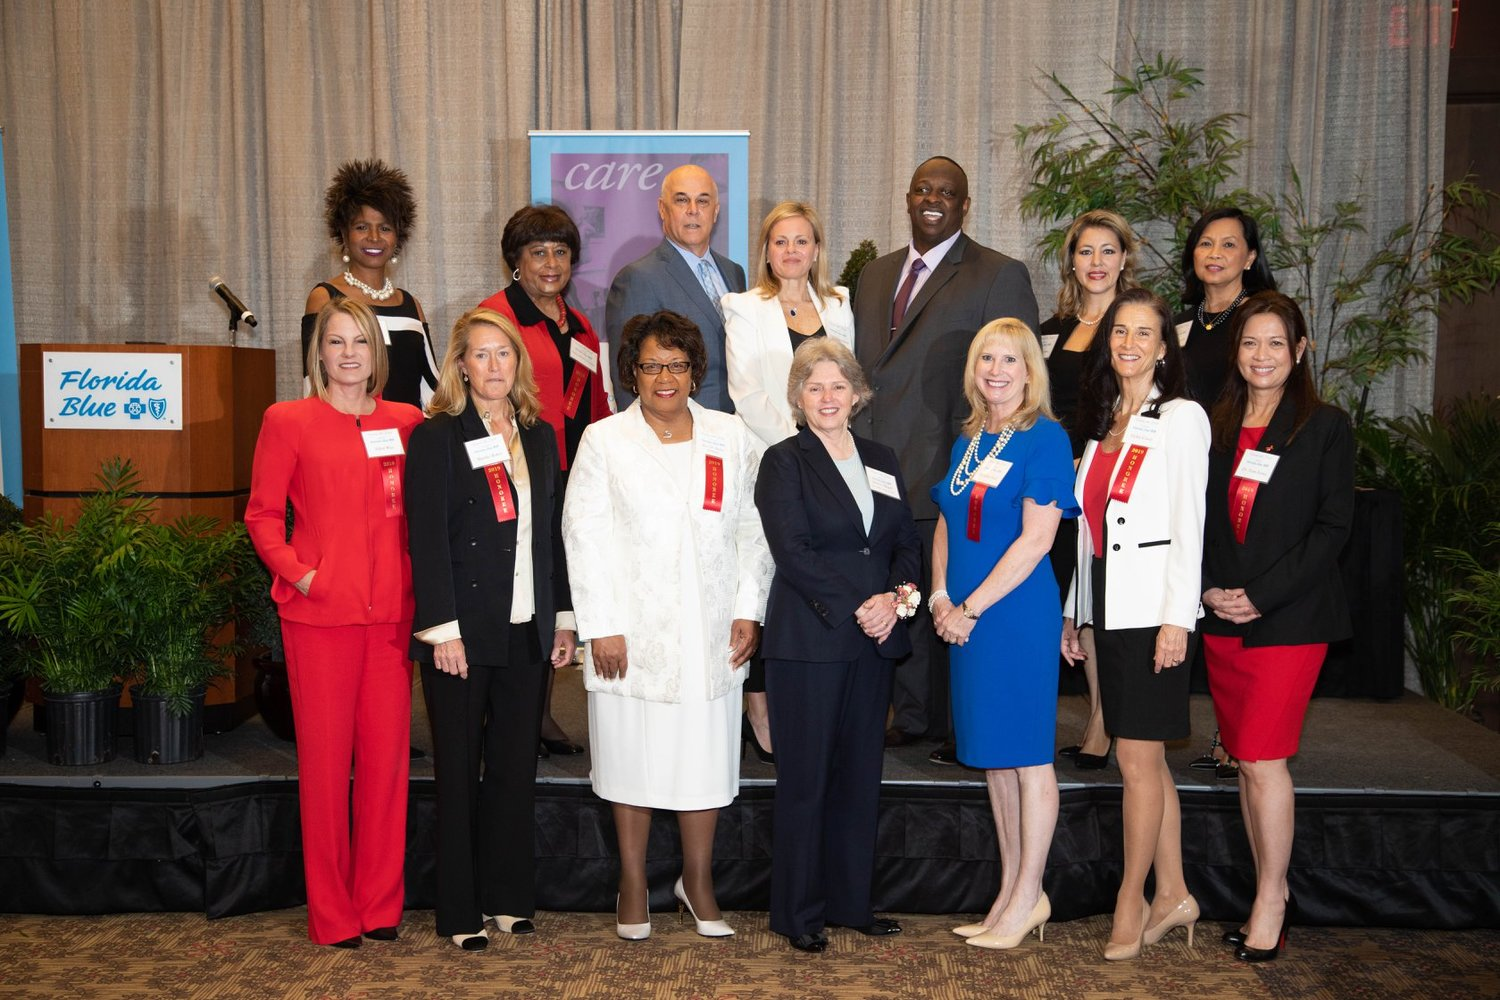 The 2019 Women with Heart honorees gather at the luncheon on Feb. 6 at the Florida Blue Conference Center in Jacksonville.